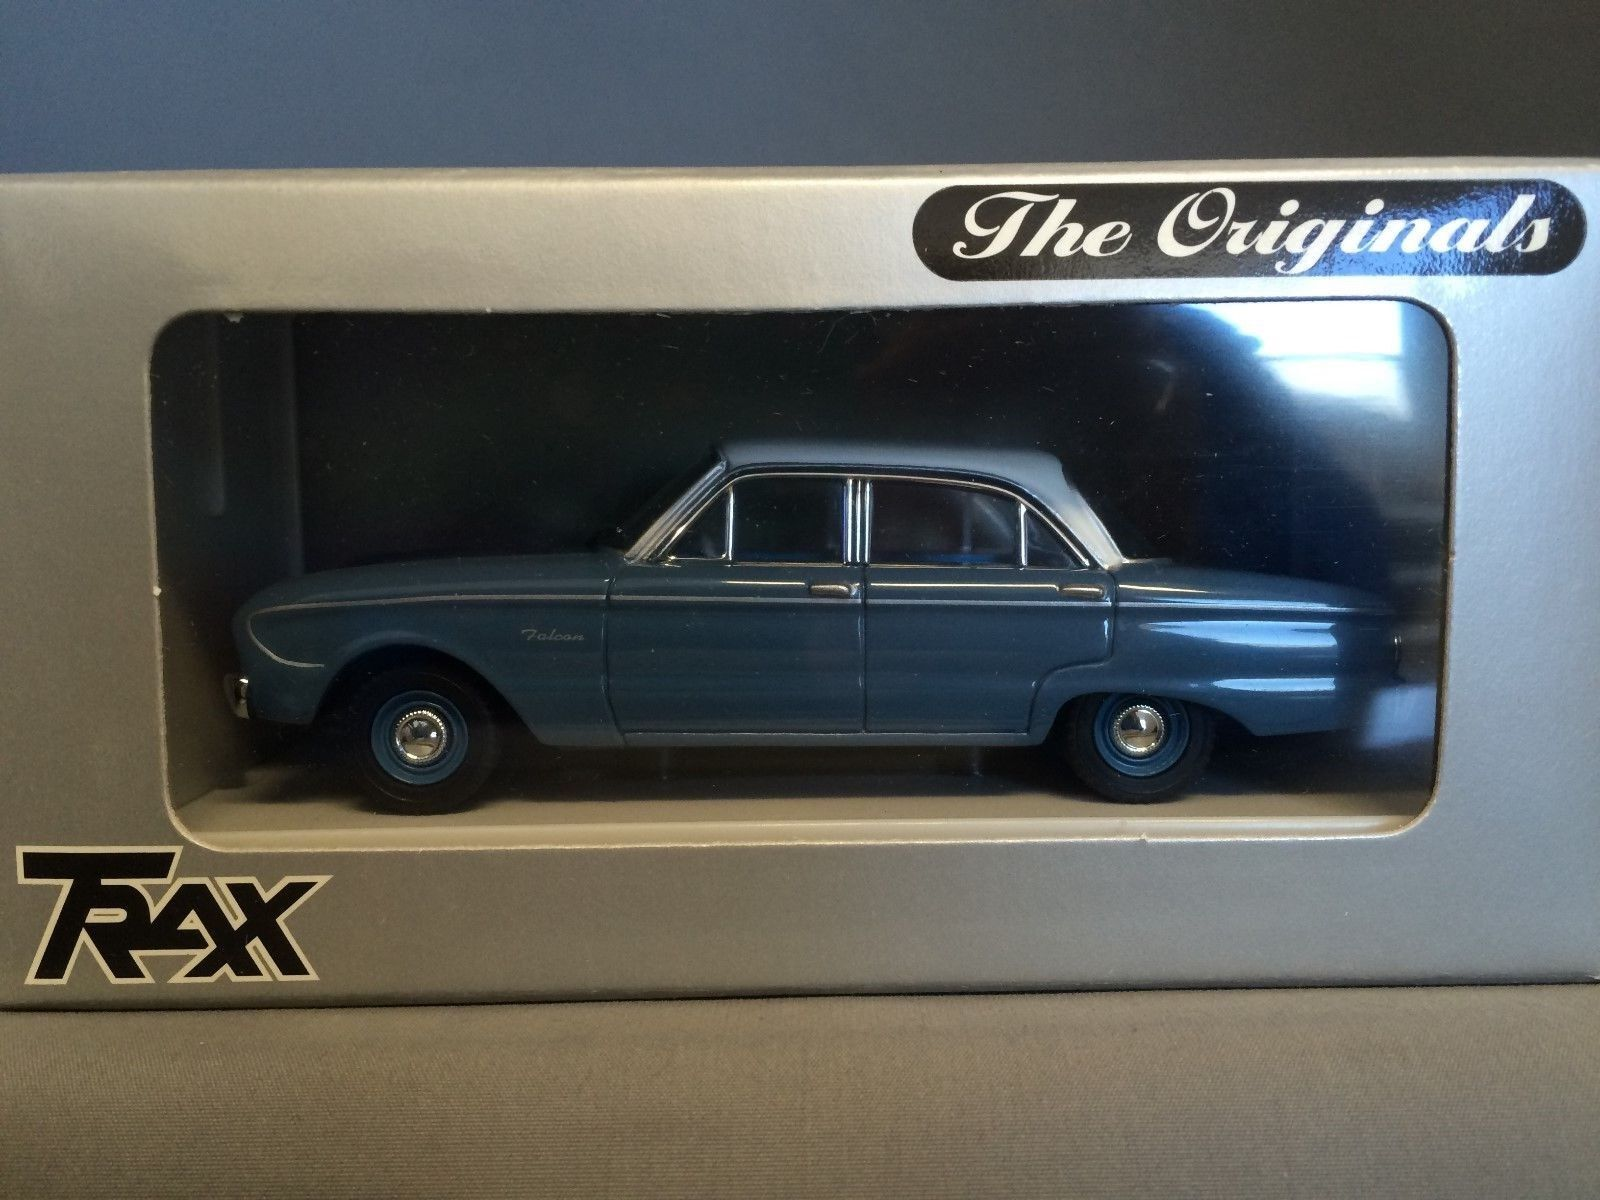 Trax TR26D  Ford Falcon XK Deluxe Deluxe Deluxe Sedan - Pacific bluee   White 295a4f